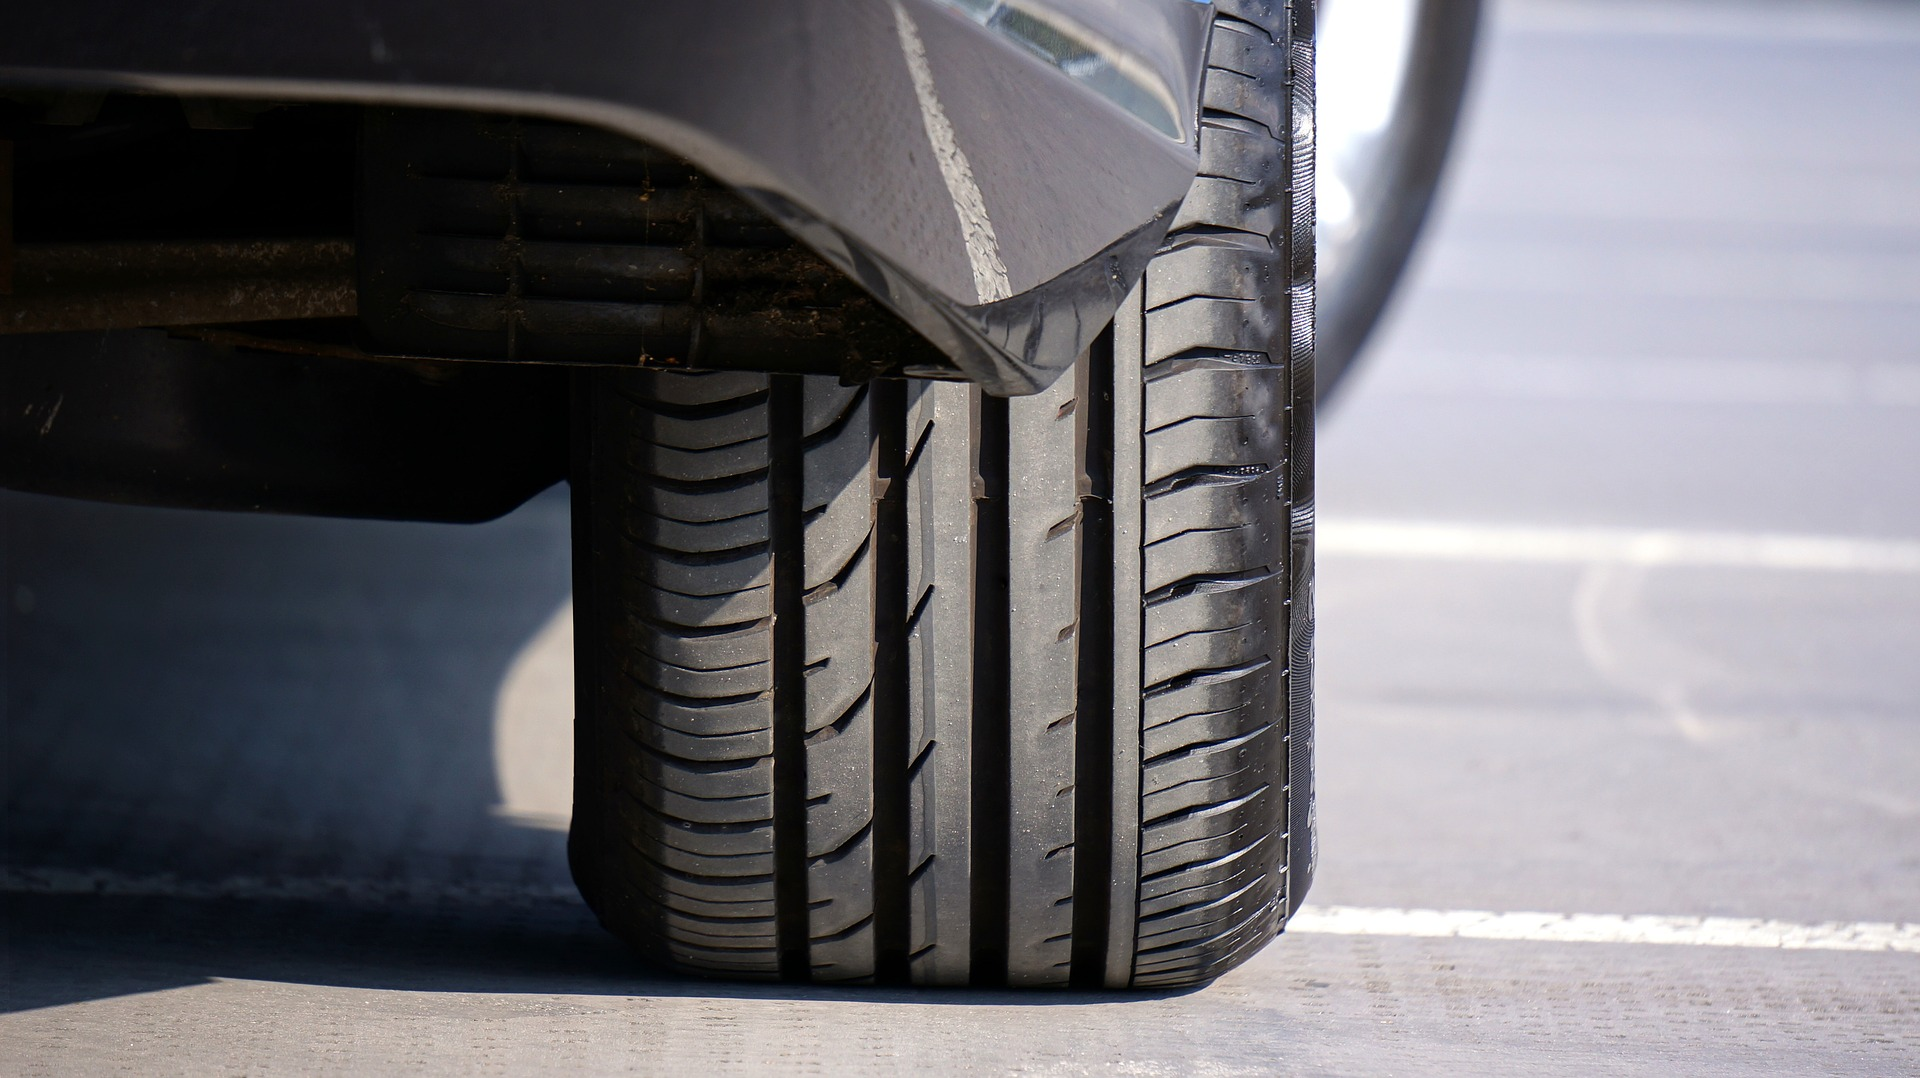 front view of tyre on road